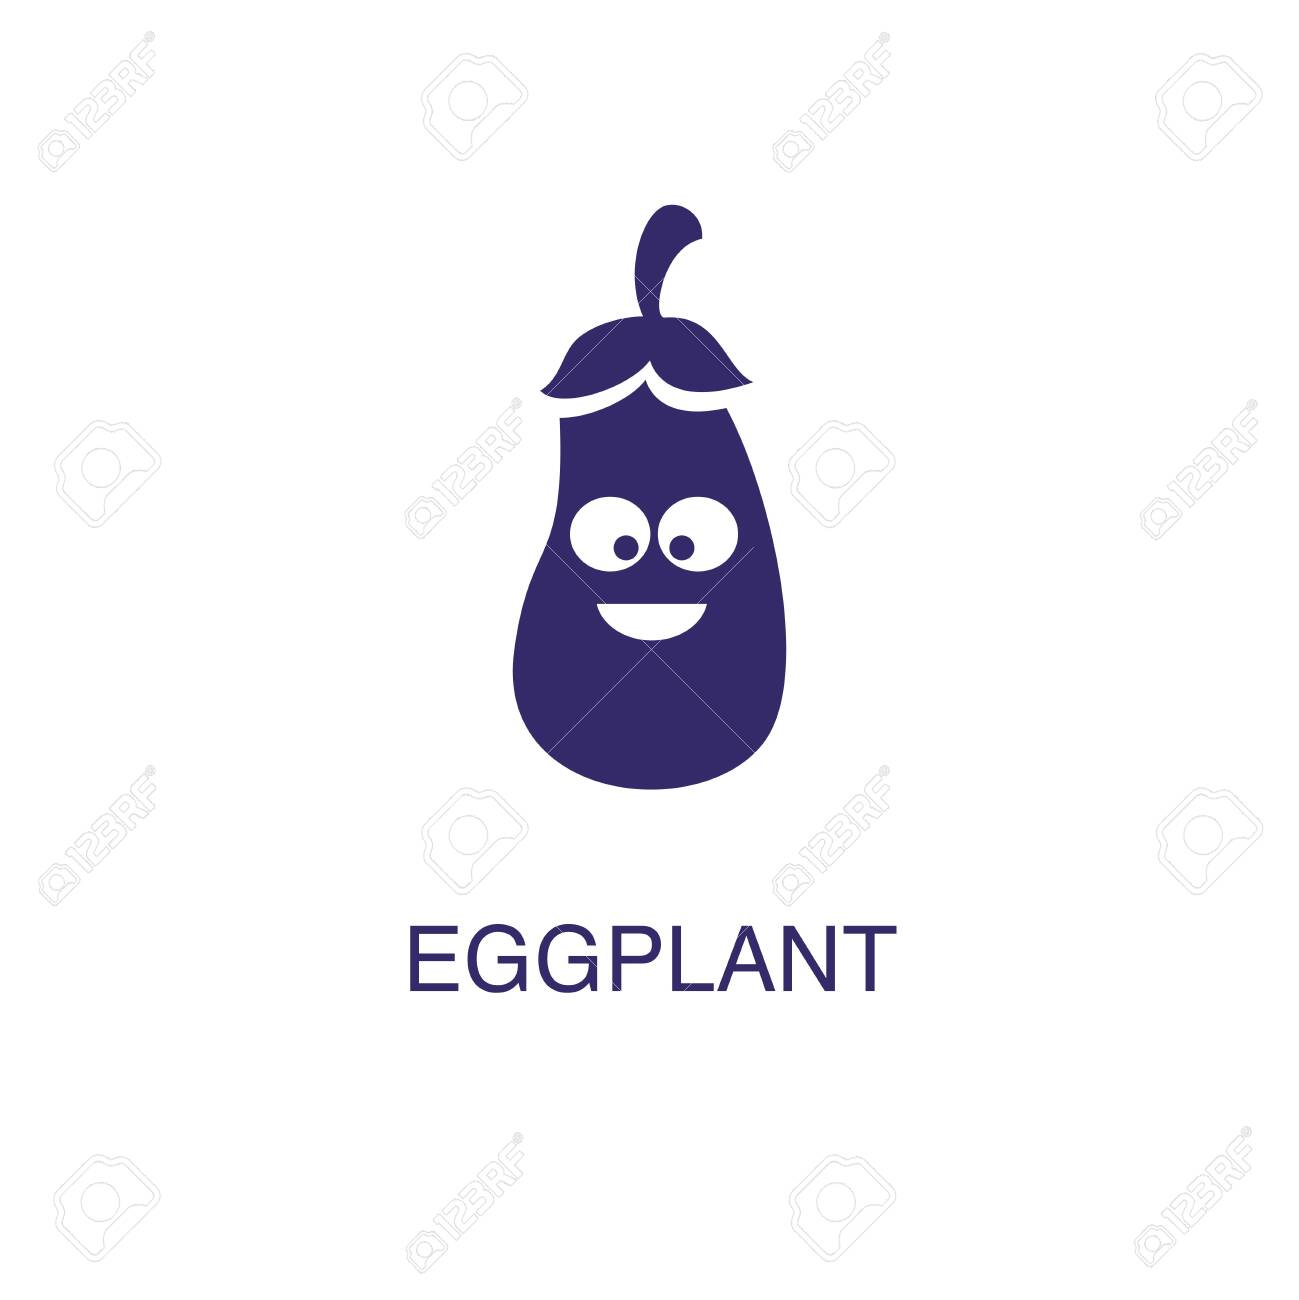 Eggplant element in flat simple style on white background. Eggplant icon, with text name concept template - 134450846